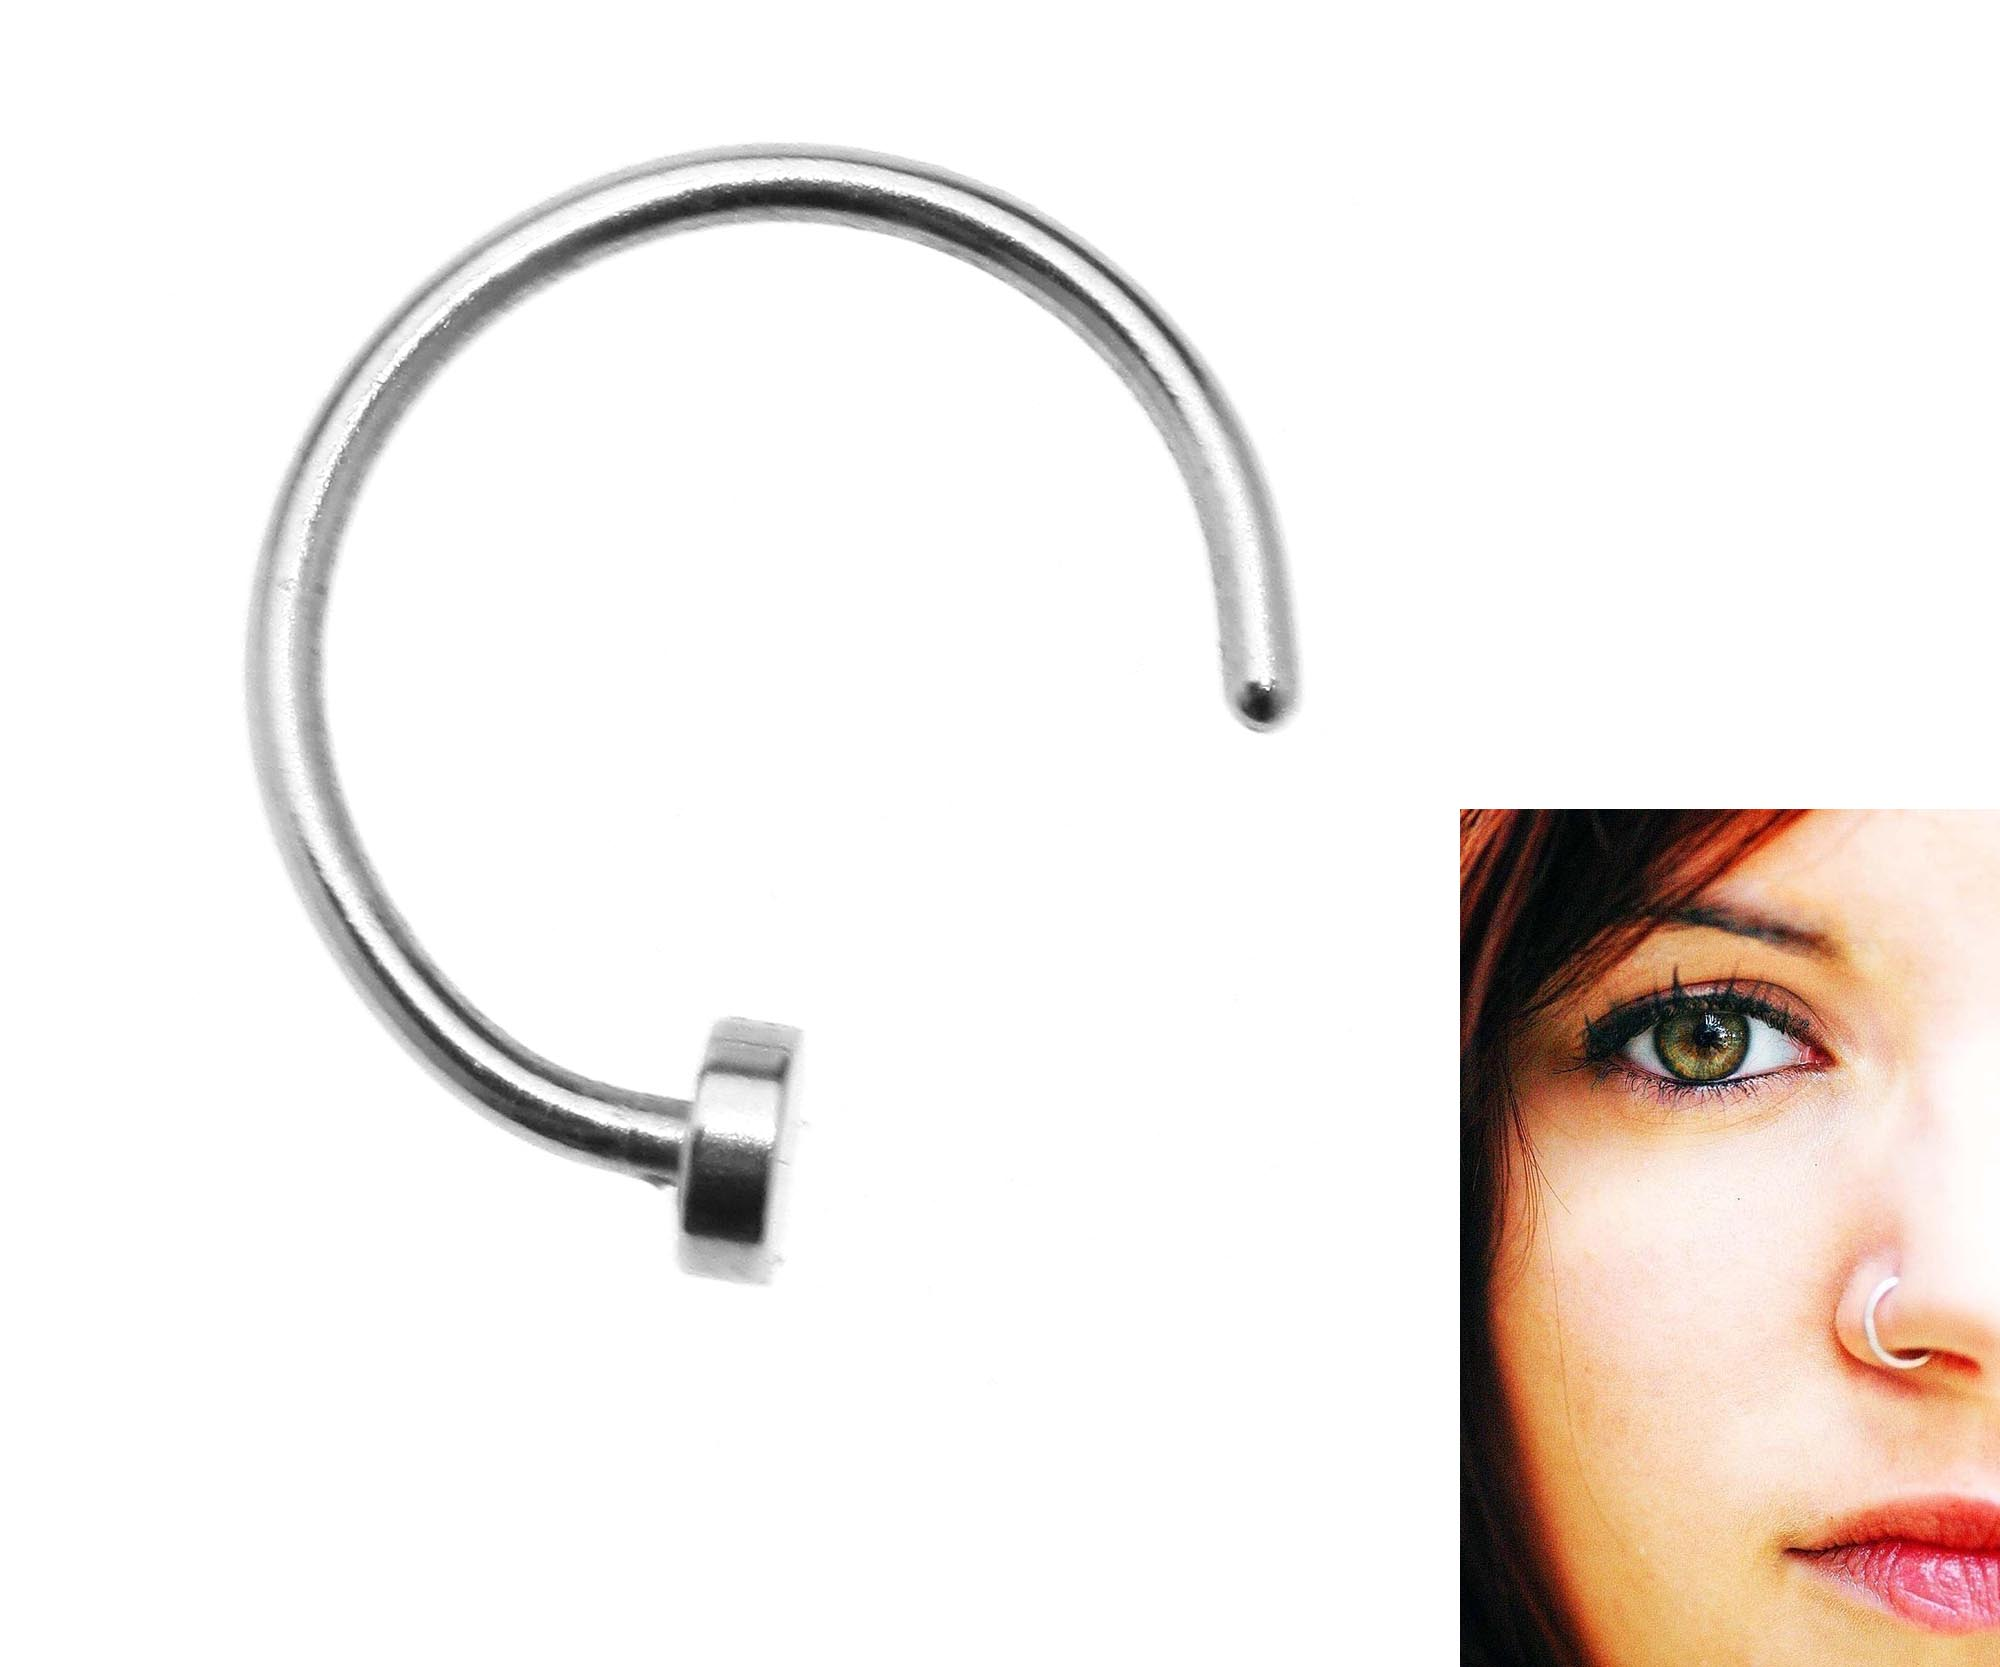 6mm Nose Ear Ring Surgical Steel Silver Piercing Stud Thin